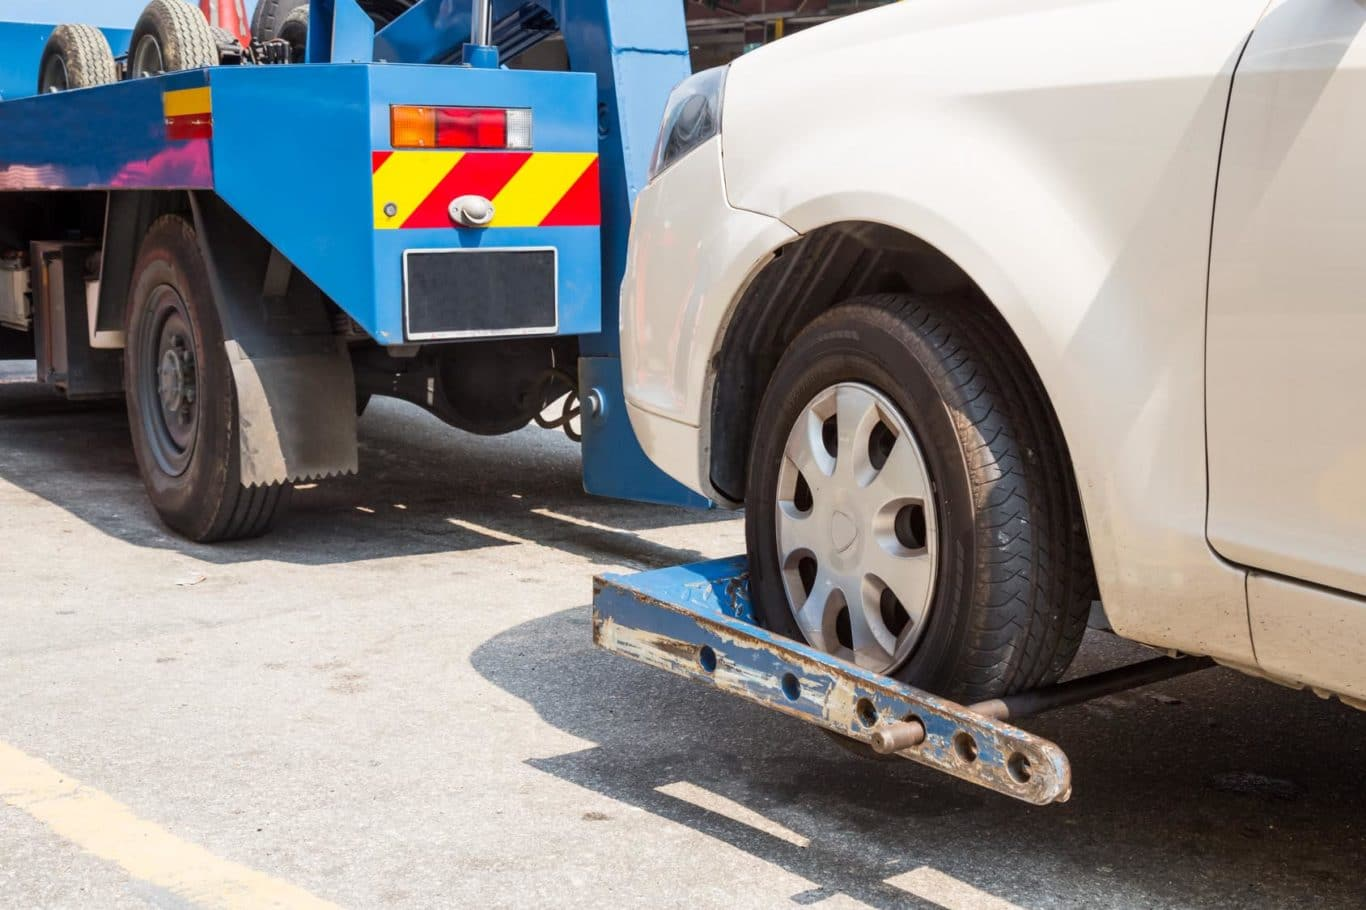 Kildangan expert Car Towing services